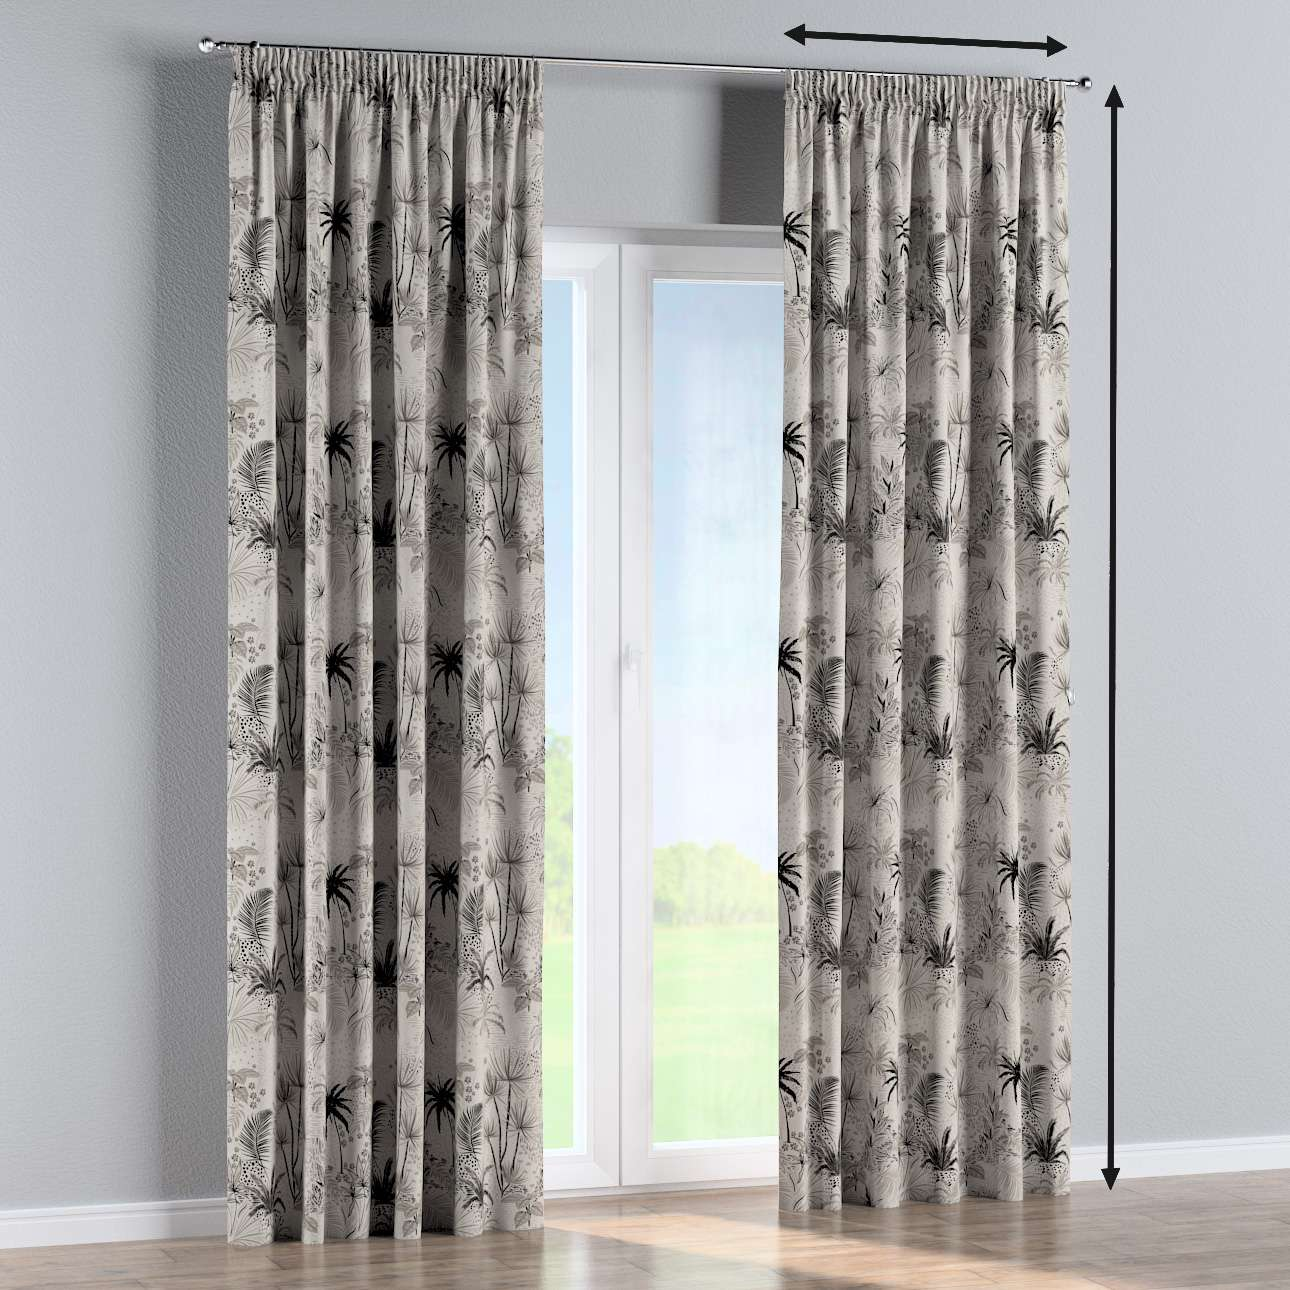 Pencil pleat curtain in collection Nordic, fabric: 142-97